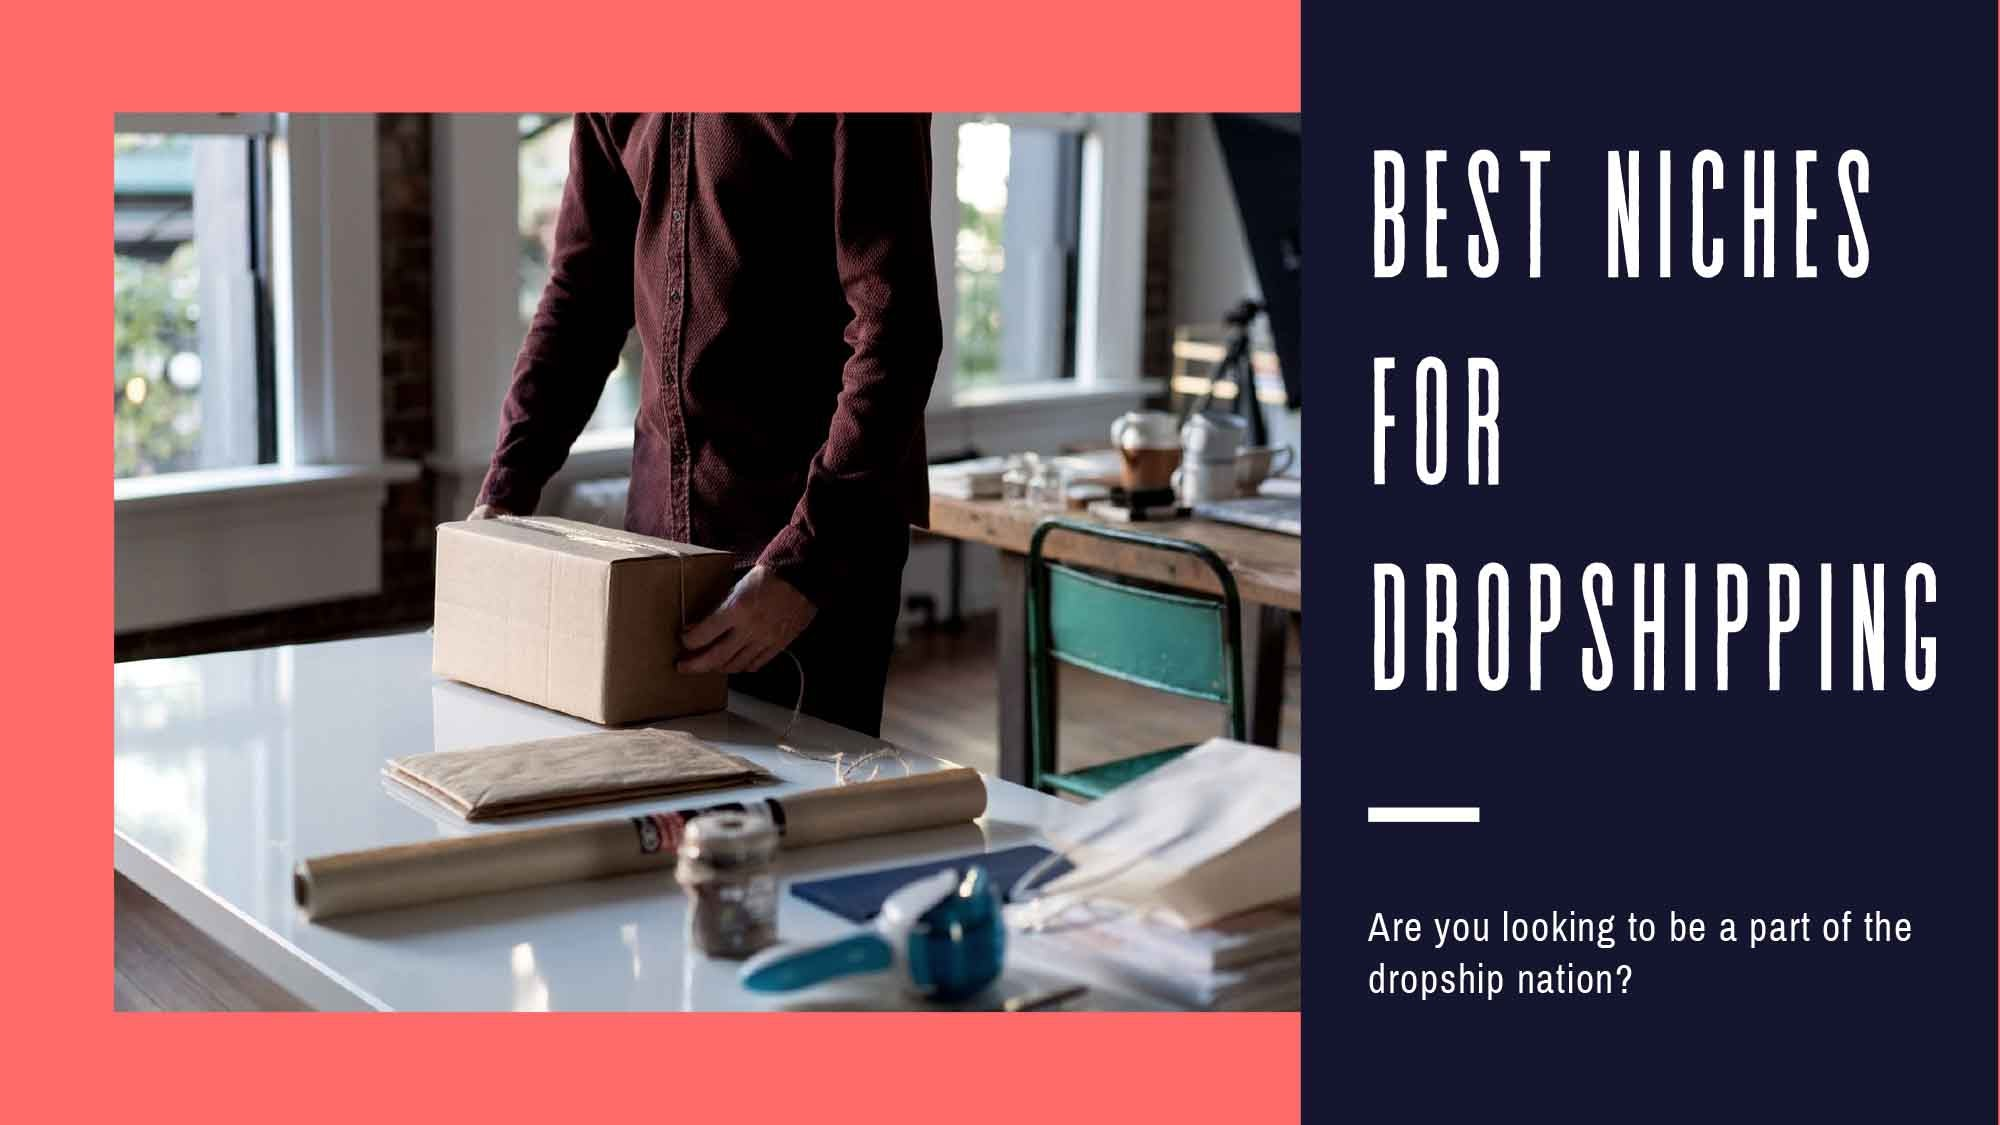 Best Niches For Dropshipping & How to The Best Dropshipping Ideas!